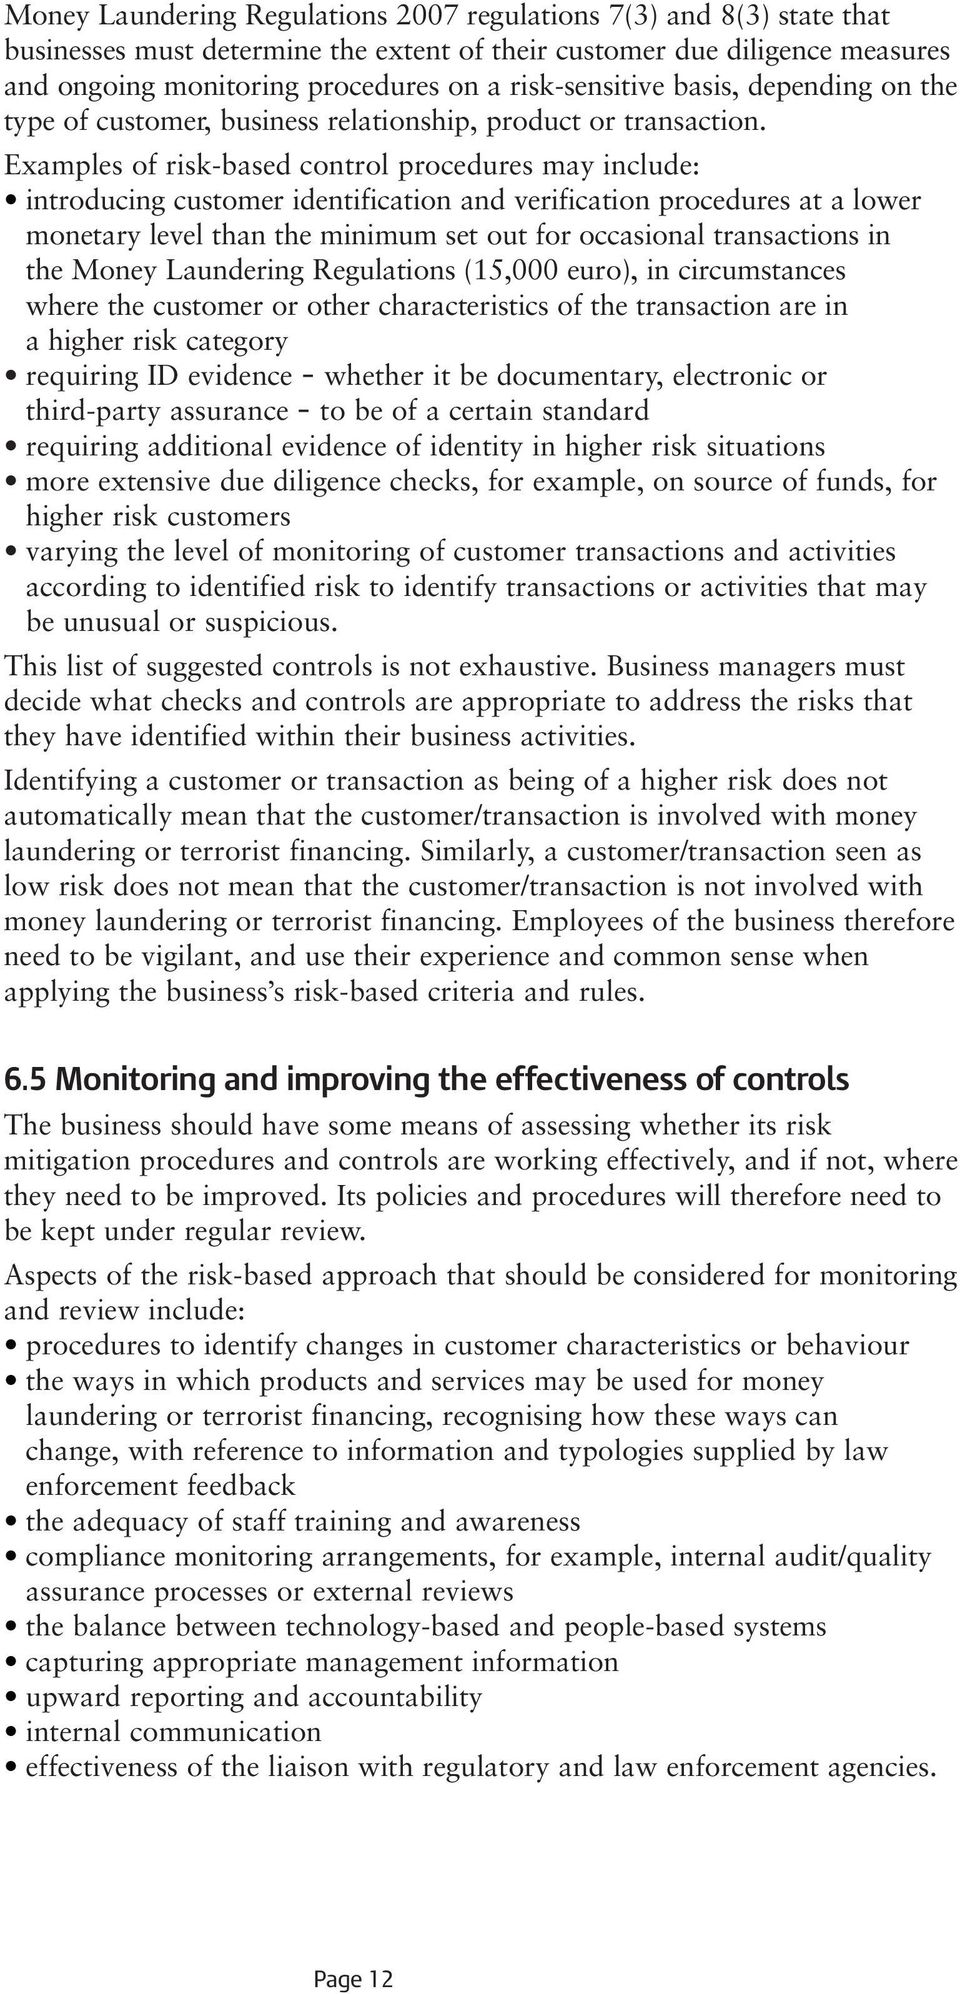 Examples of risk-based control procedures may include: introducing customer identification and verification procedures at a lower monetary level than the minimum set out for occasional transactions